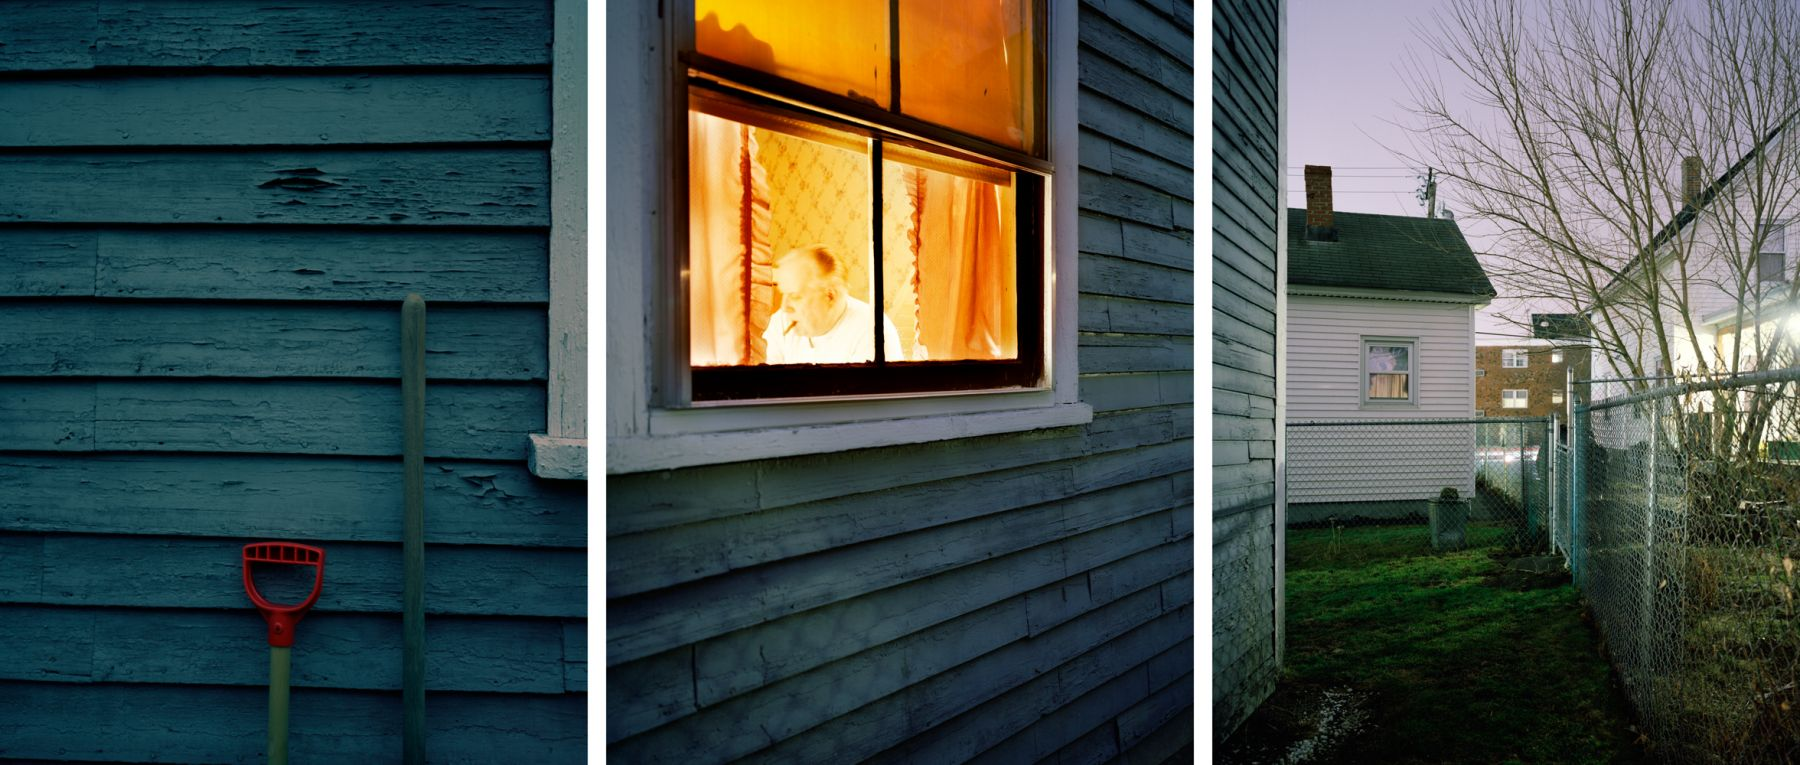 Dad, 1998. Three-panel archival pigment print, available as 24 x 60 or 40 x 90 inches.